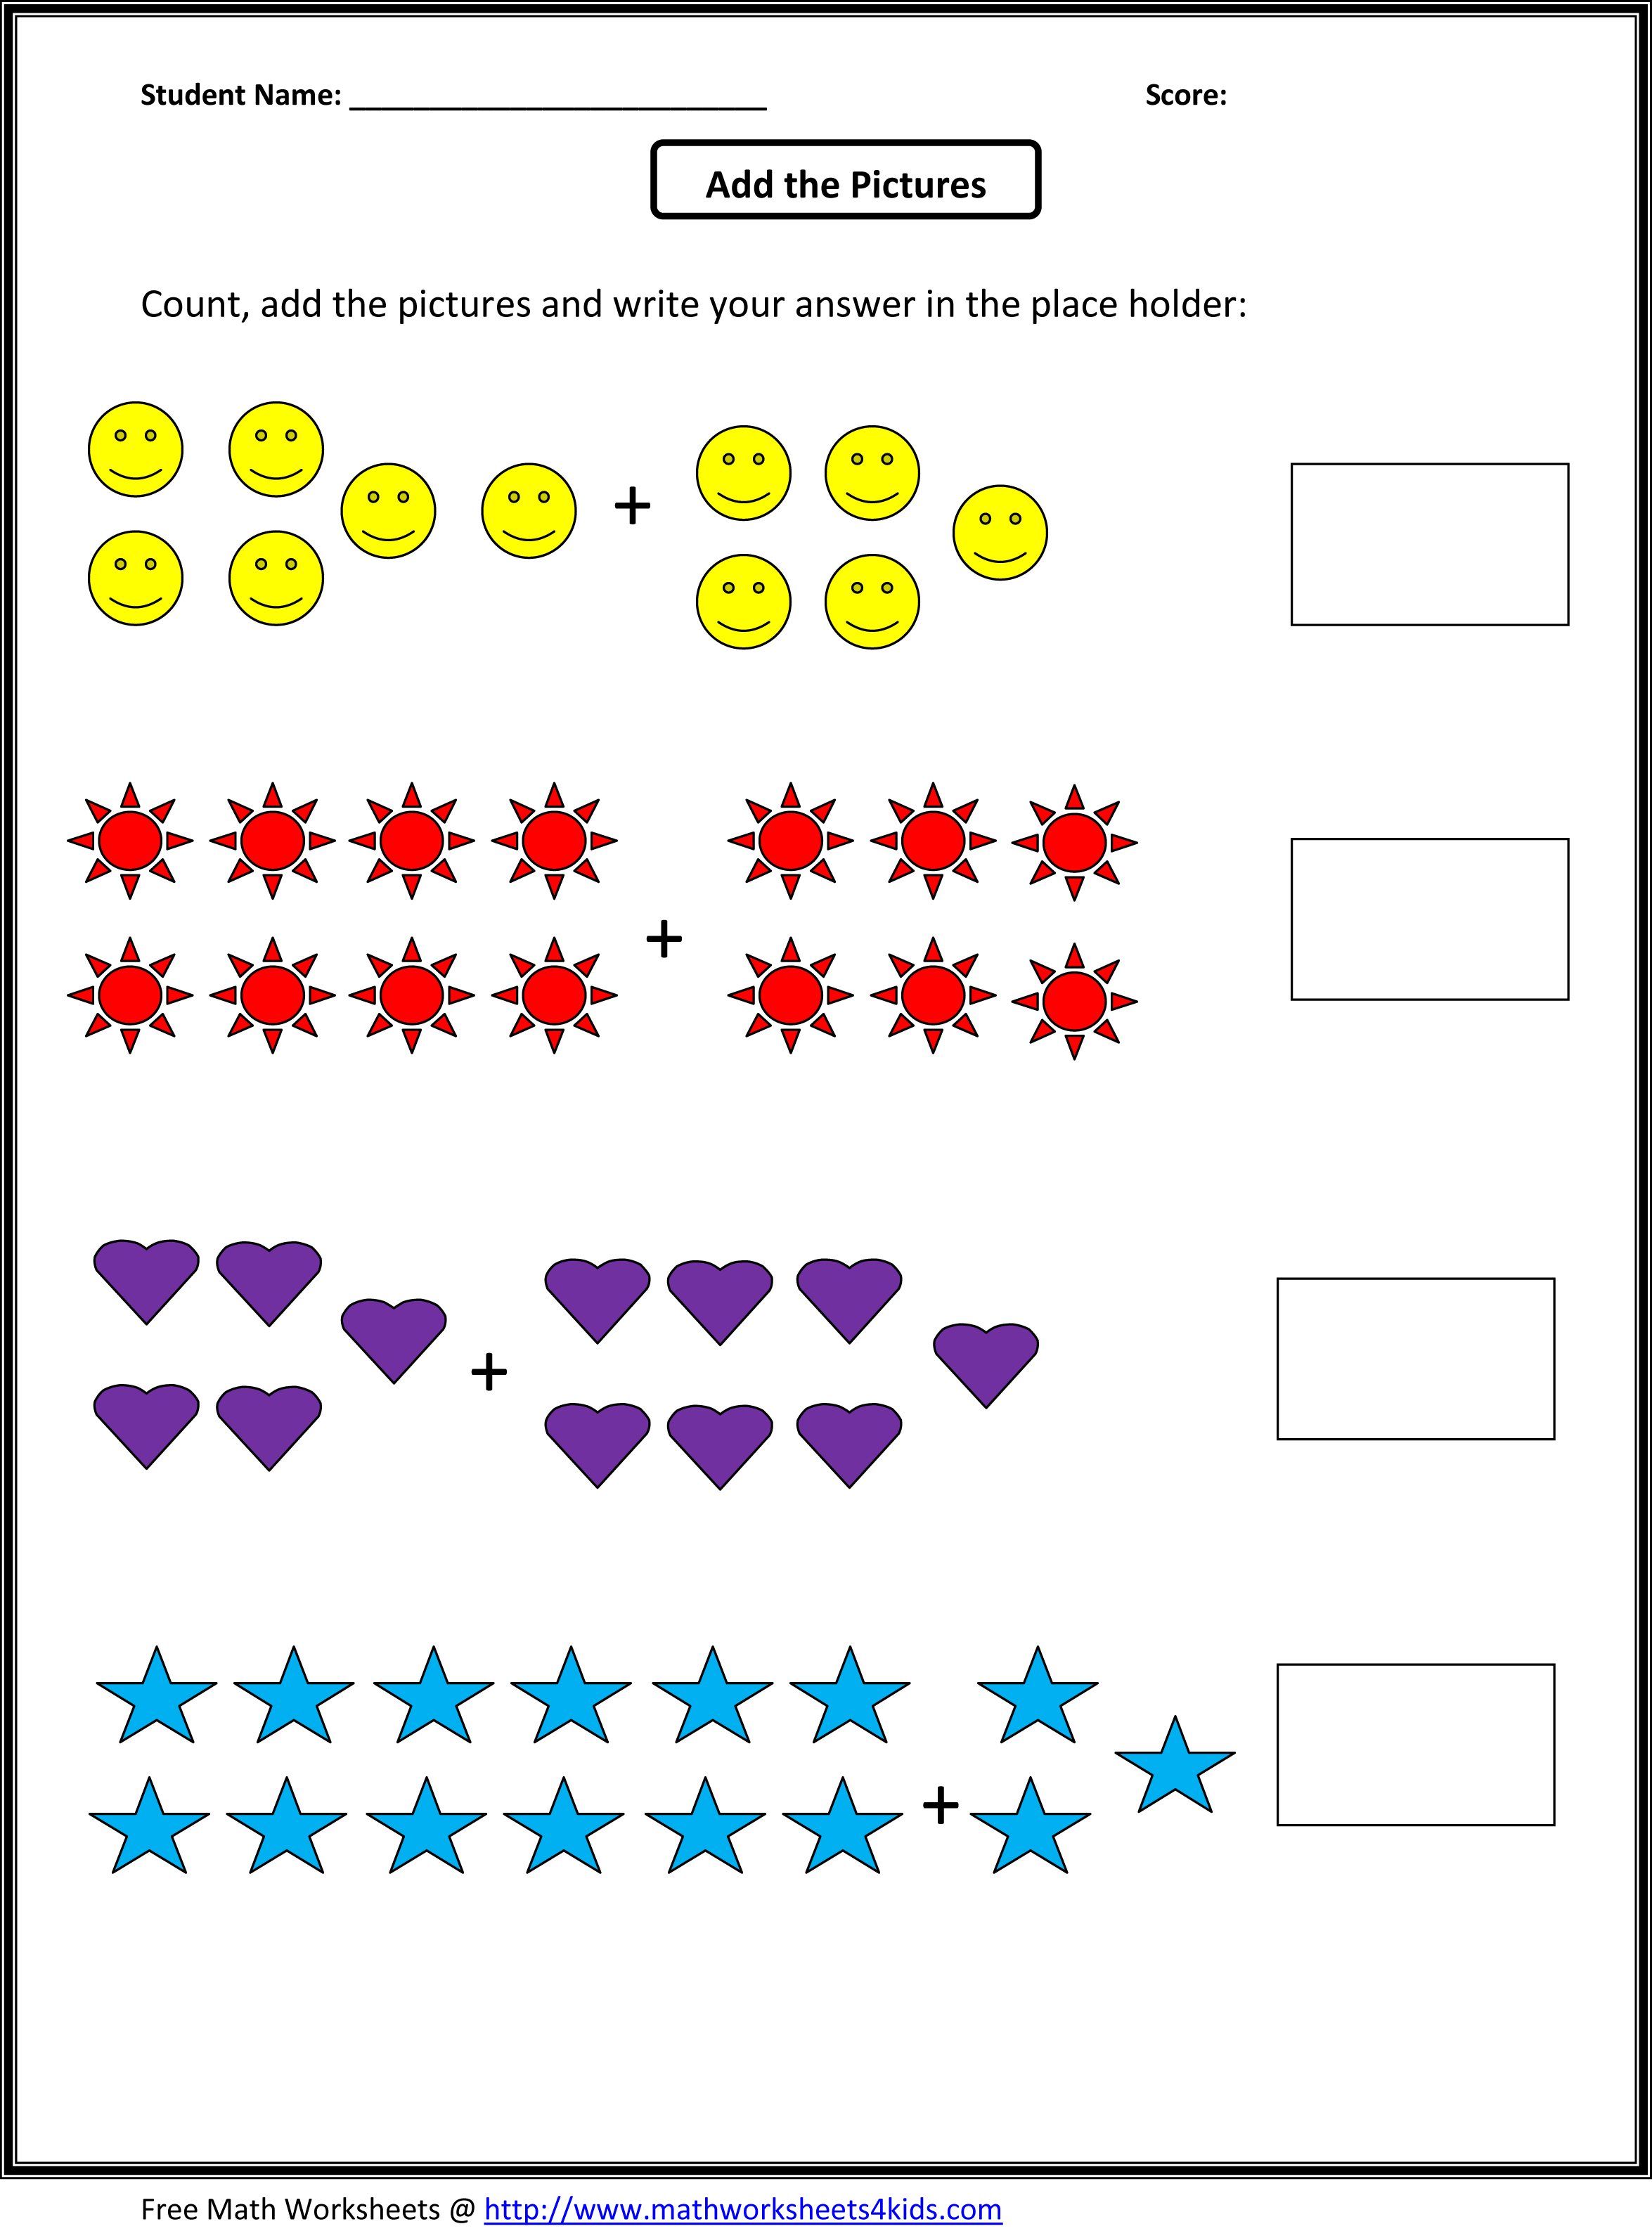 Weirdmailus  Personable Grade  Maths Worksheet  Reocurent With Lovely Math Worksheets For St Grade Free  Reocurent With Captivating Division Worksheets With Remainders Also Addition Worksheets With Pictures In Addition Matter Worksheet And Free Halloween Worksheets As Well As Long And Synthetic Division Worksheet Additionally Solving Quadratic Inequalities Worksheet From Reocurentcom With Weirdmailus  Lovely Grade  Maths Worksheet  Reocurent With Captivating Math Worksheets For St Grade Free  Reocurent And Personable Division Worksheets With Remainders Also Addition Worksheets With Pictures In Addition Matter Worksheet From Reocurentcom